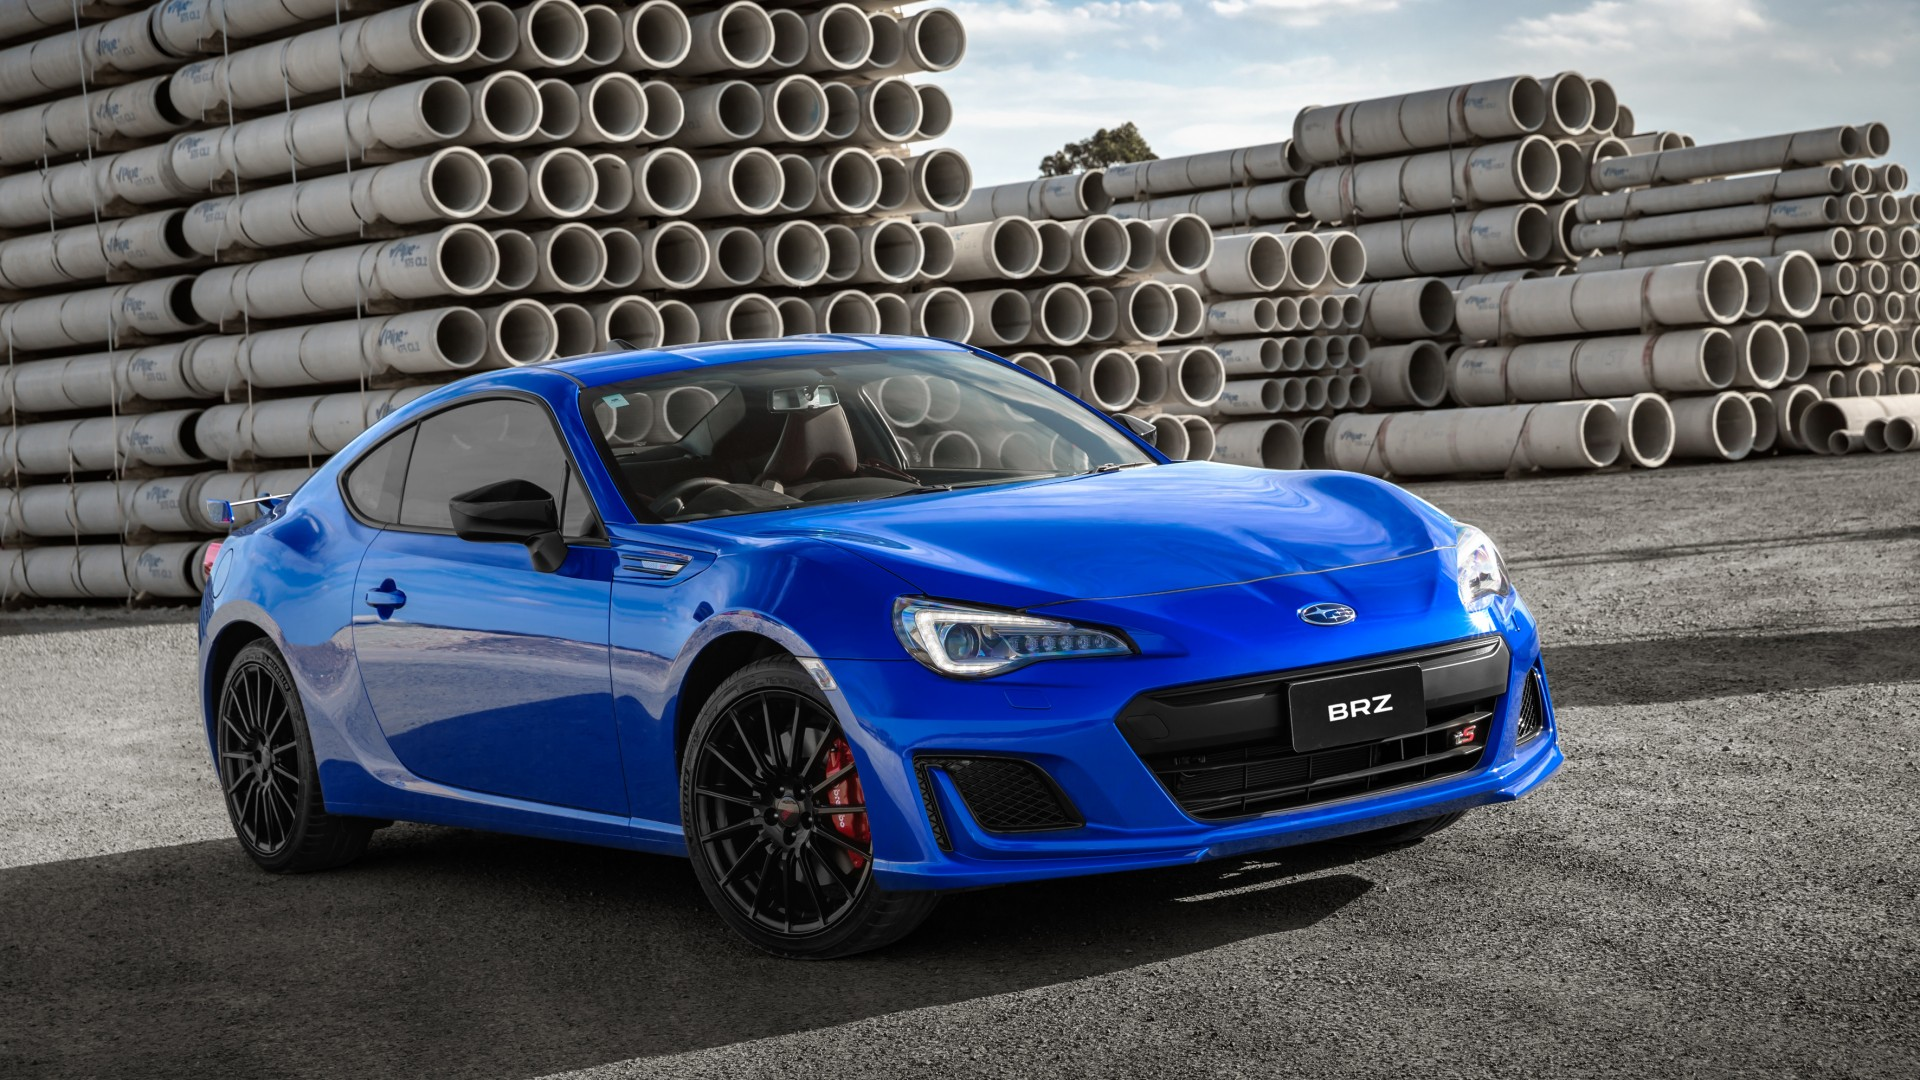 2018 Subaru BRZ TS Wallpaper